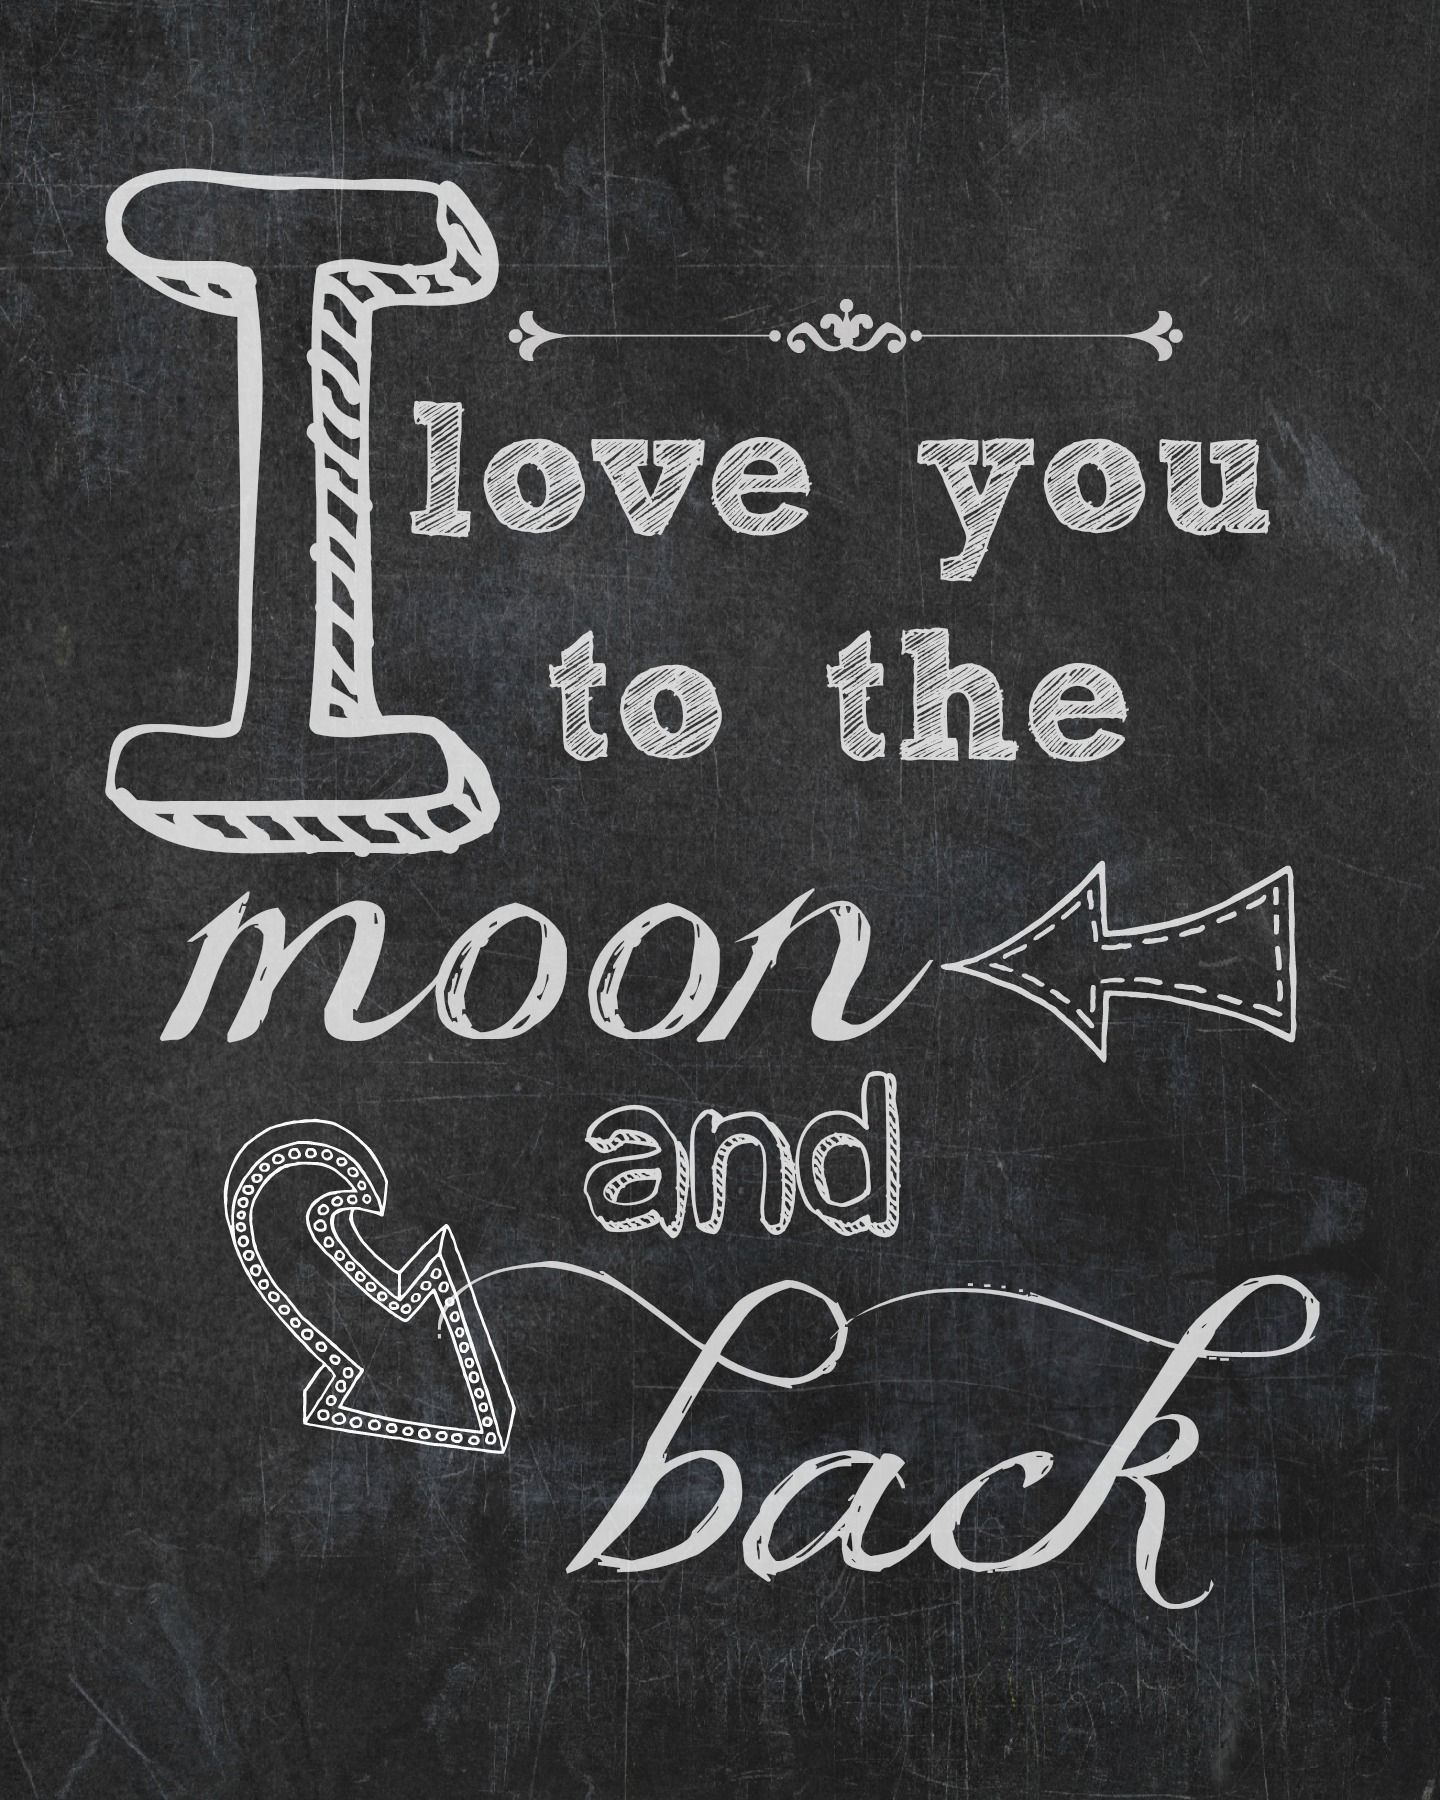 Quote I Love You To The Moon And Back I Love You To The Moon & Back Free Printable  Free Printable